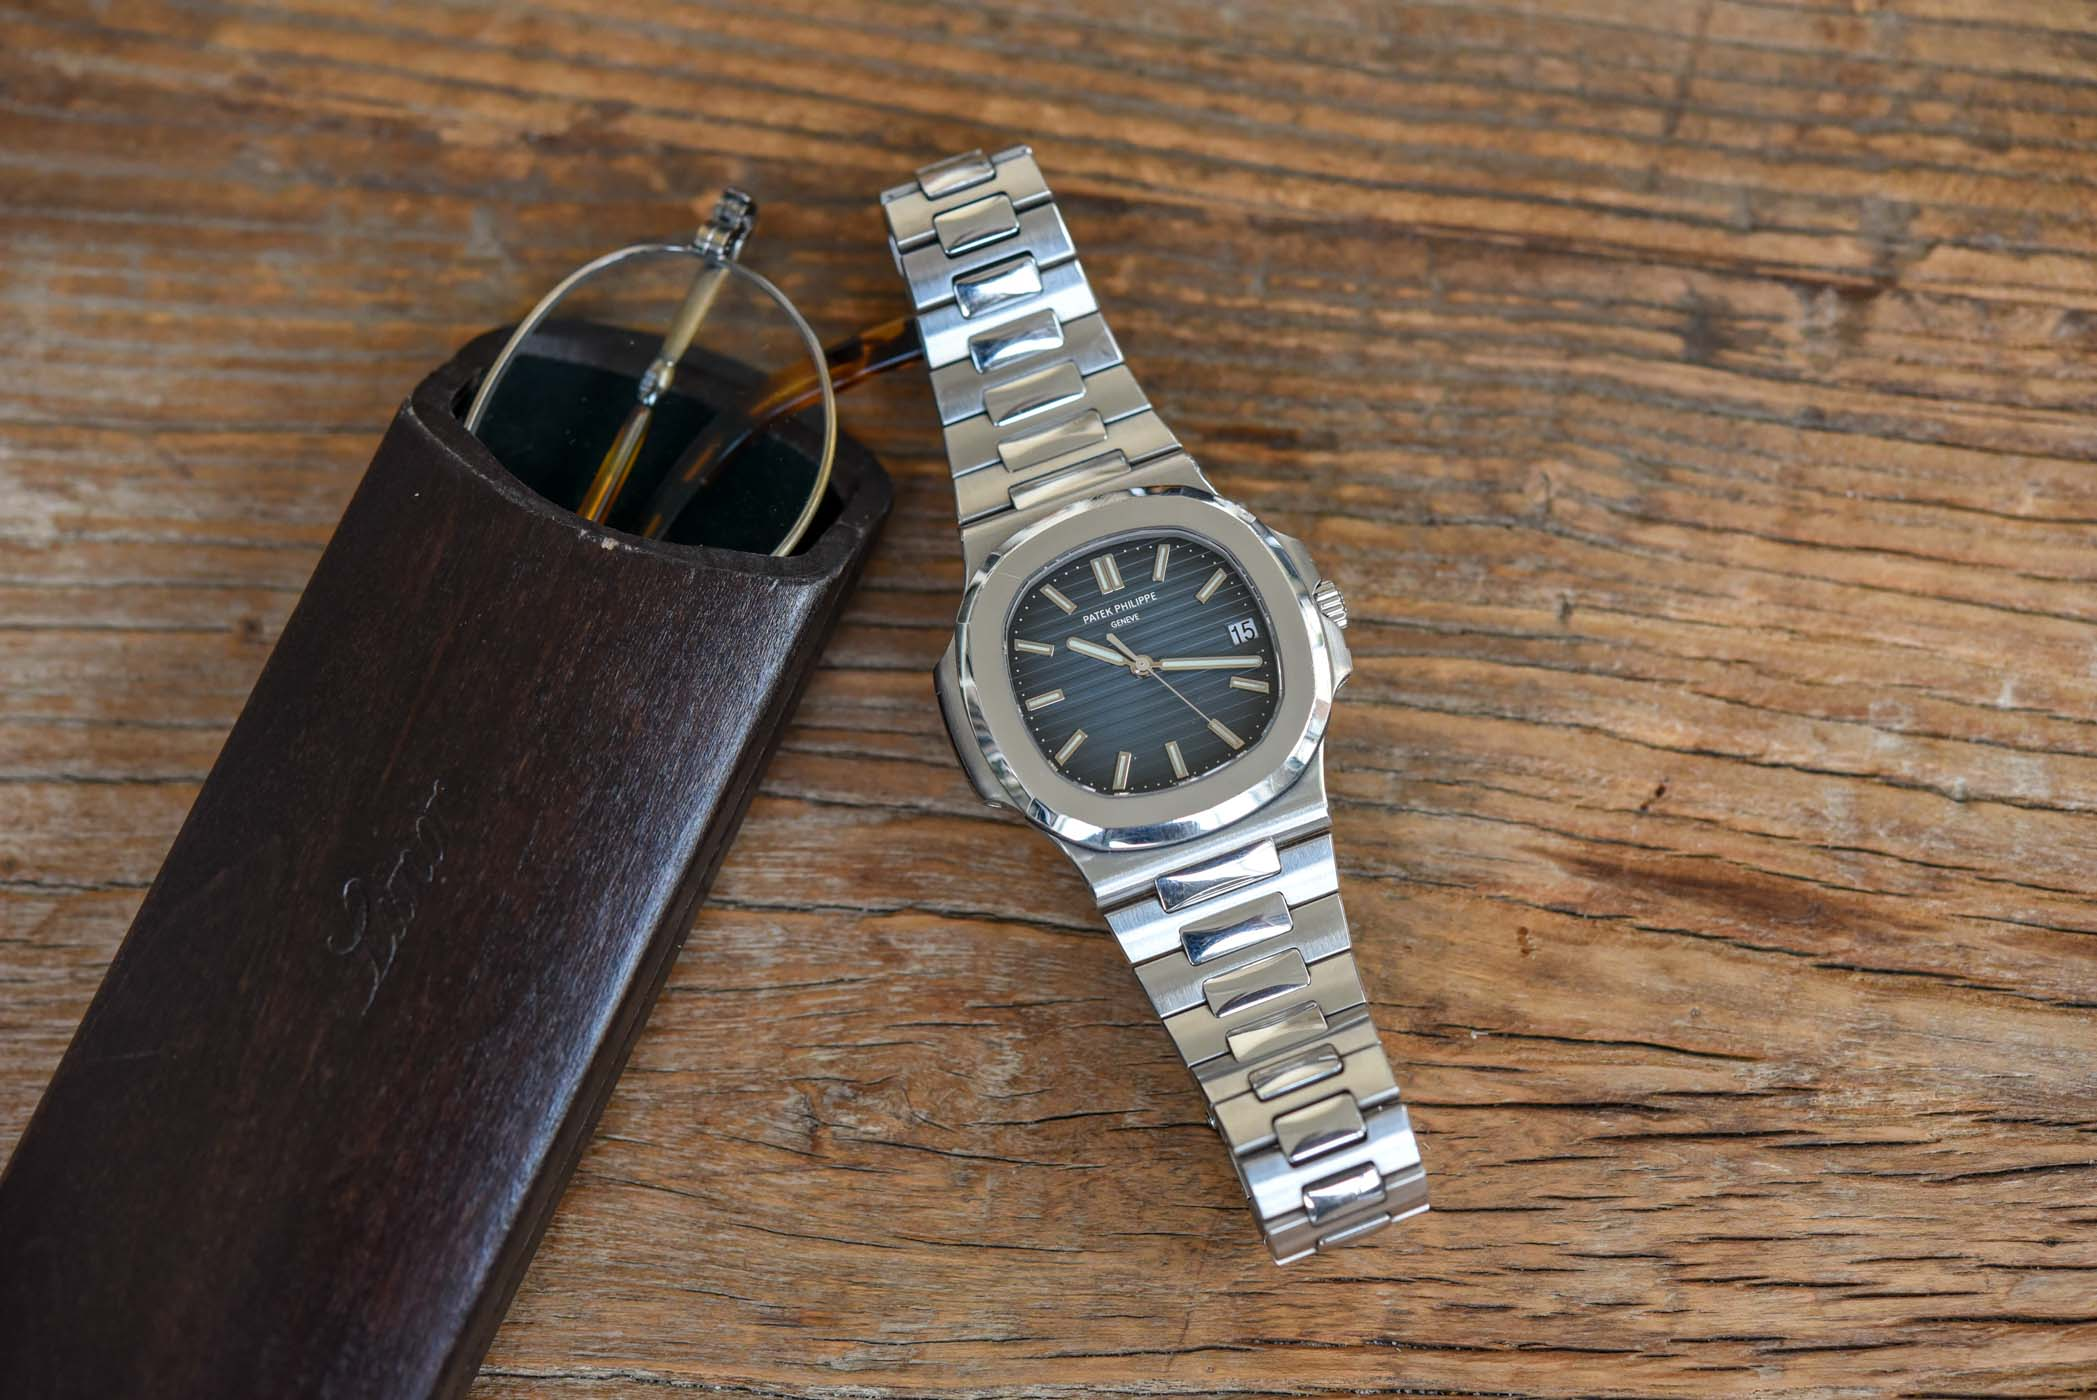 Thoughts On The Patek Philippe Nautilus Ref 5711 And Why I Didn T